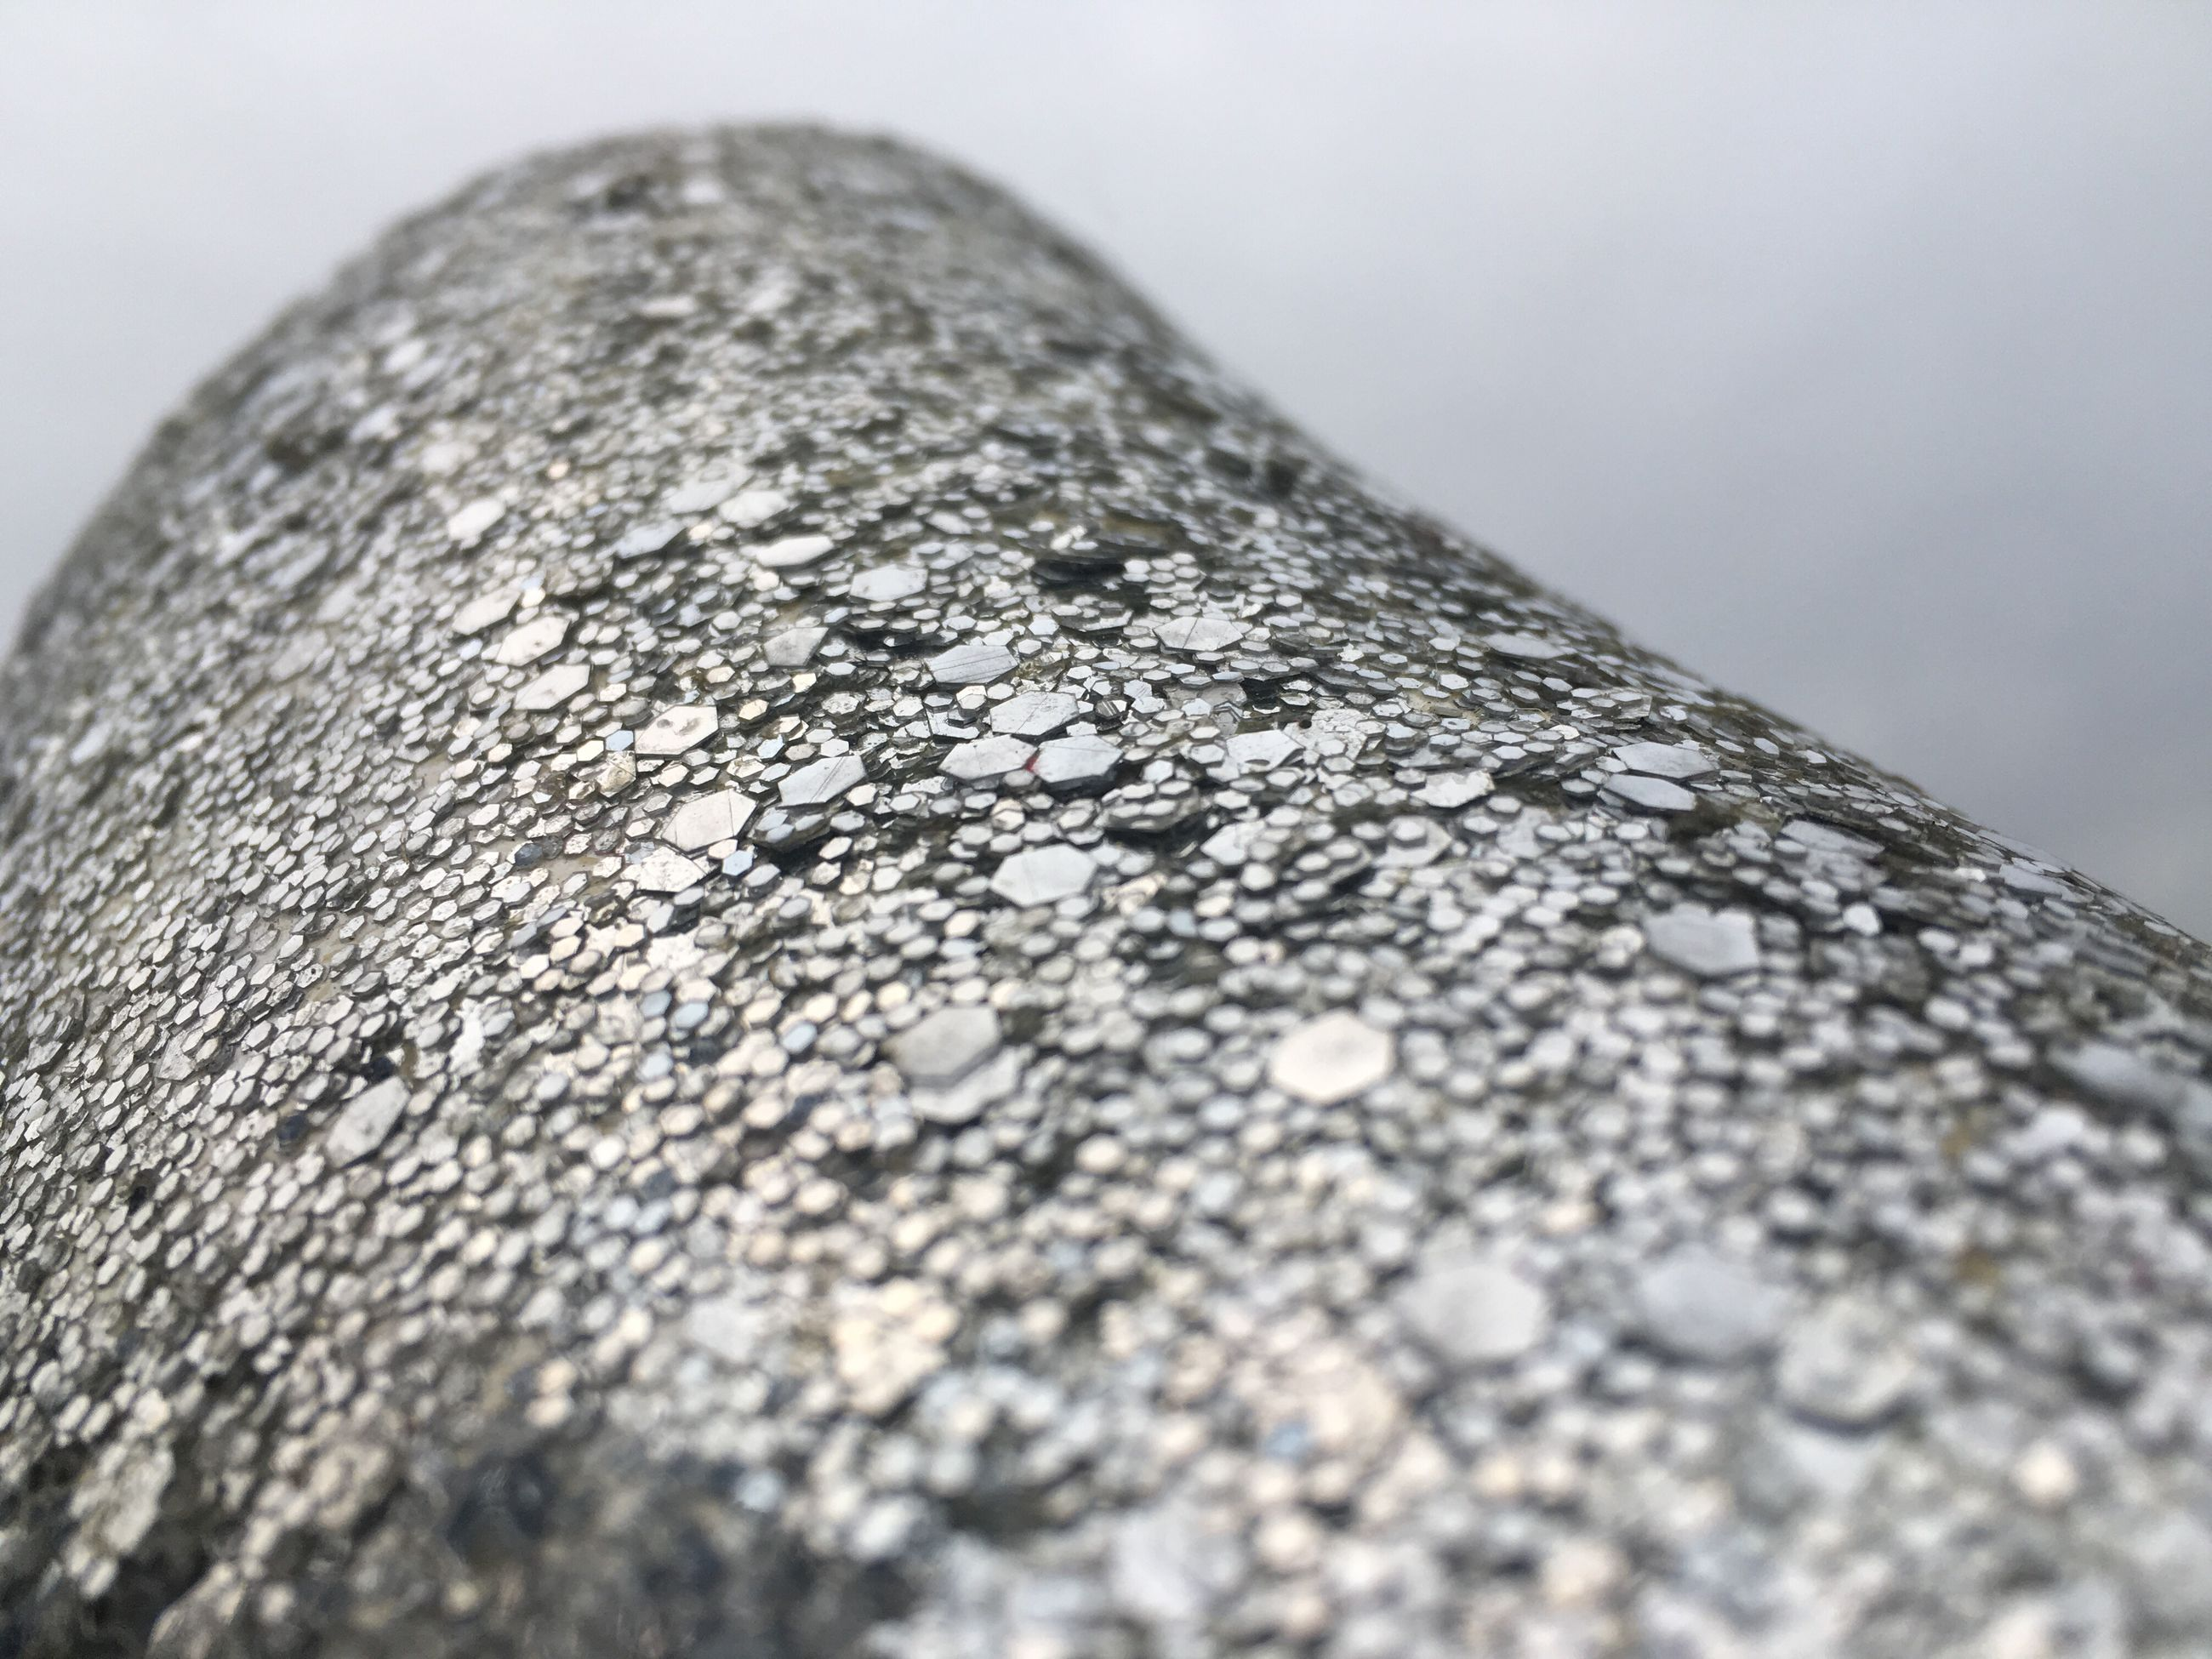 close-up, no people, textured, water, day, outdoors